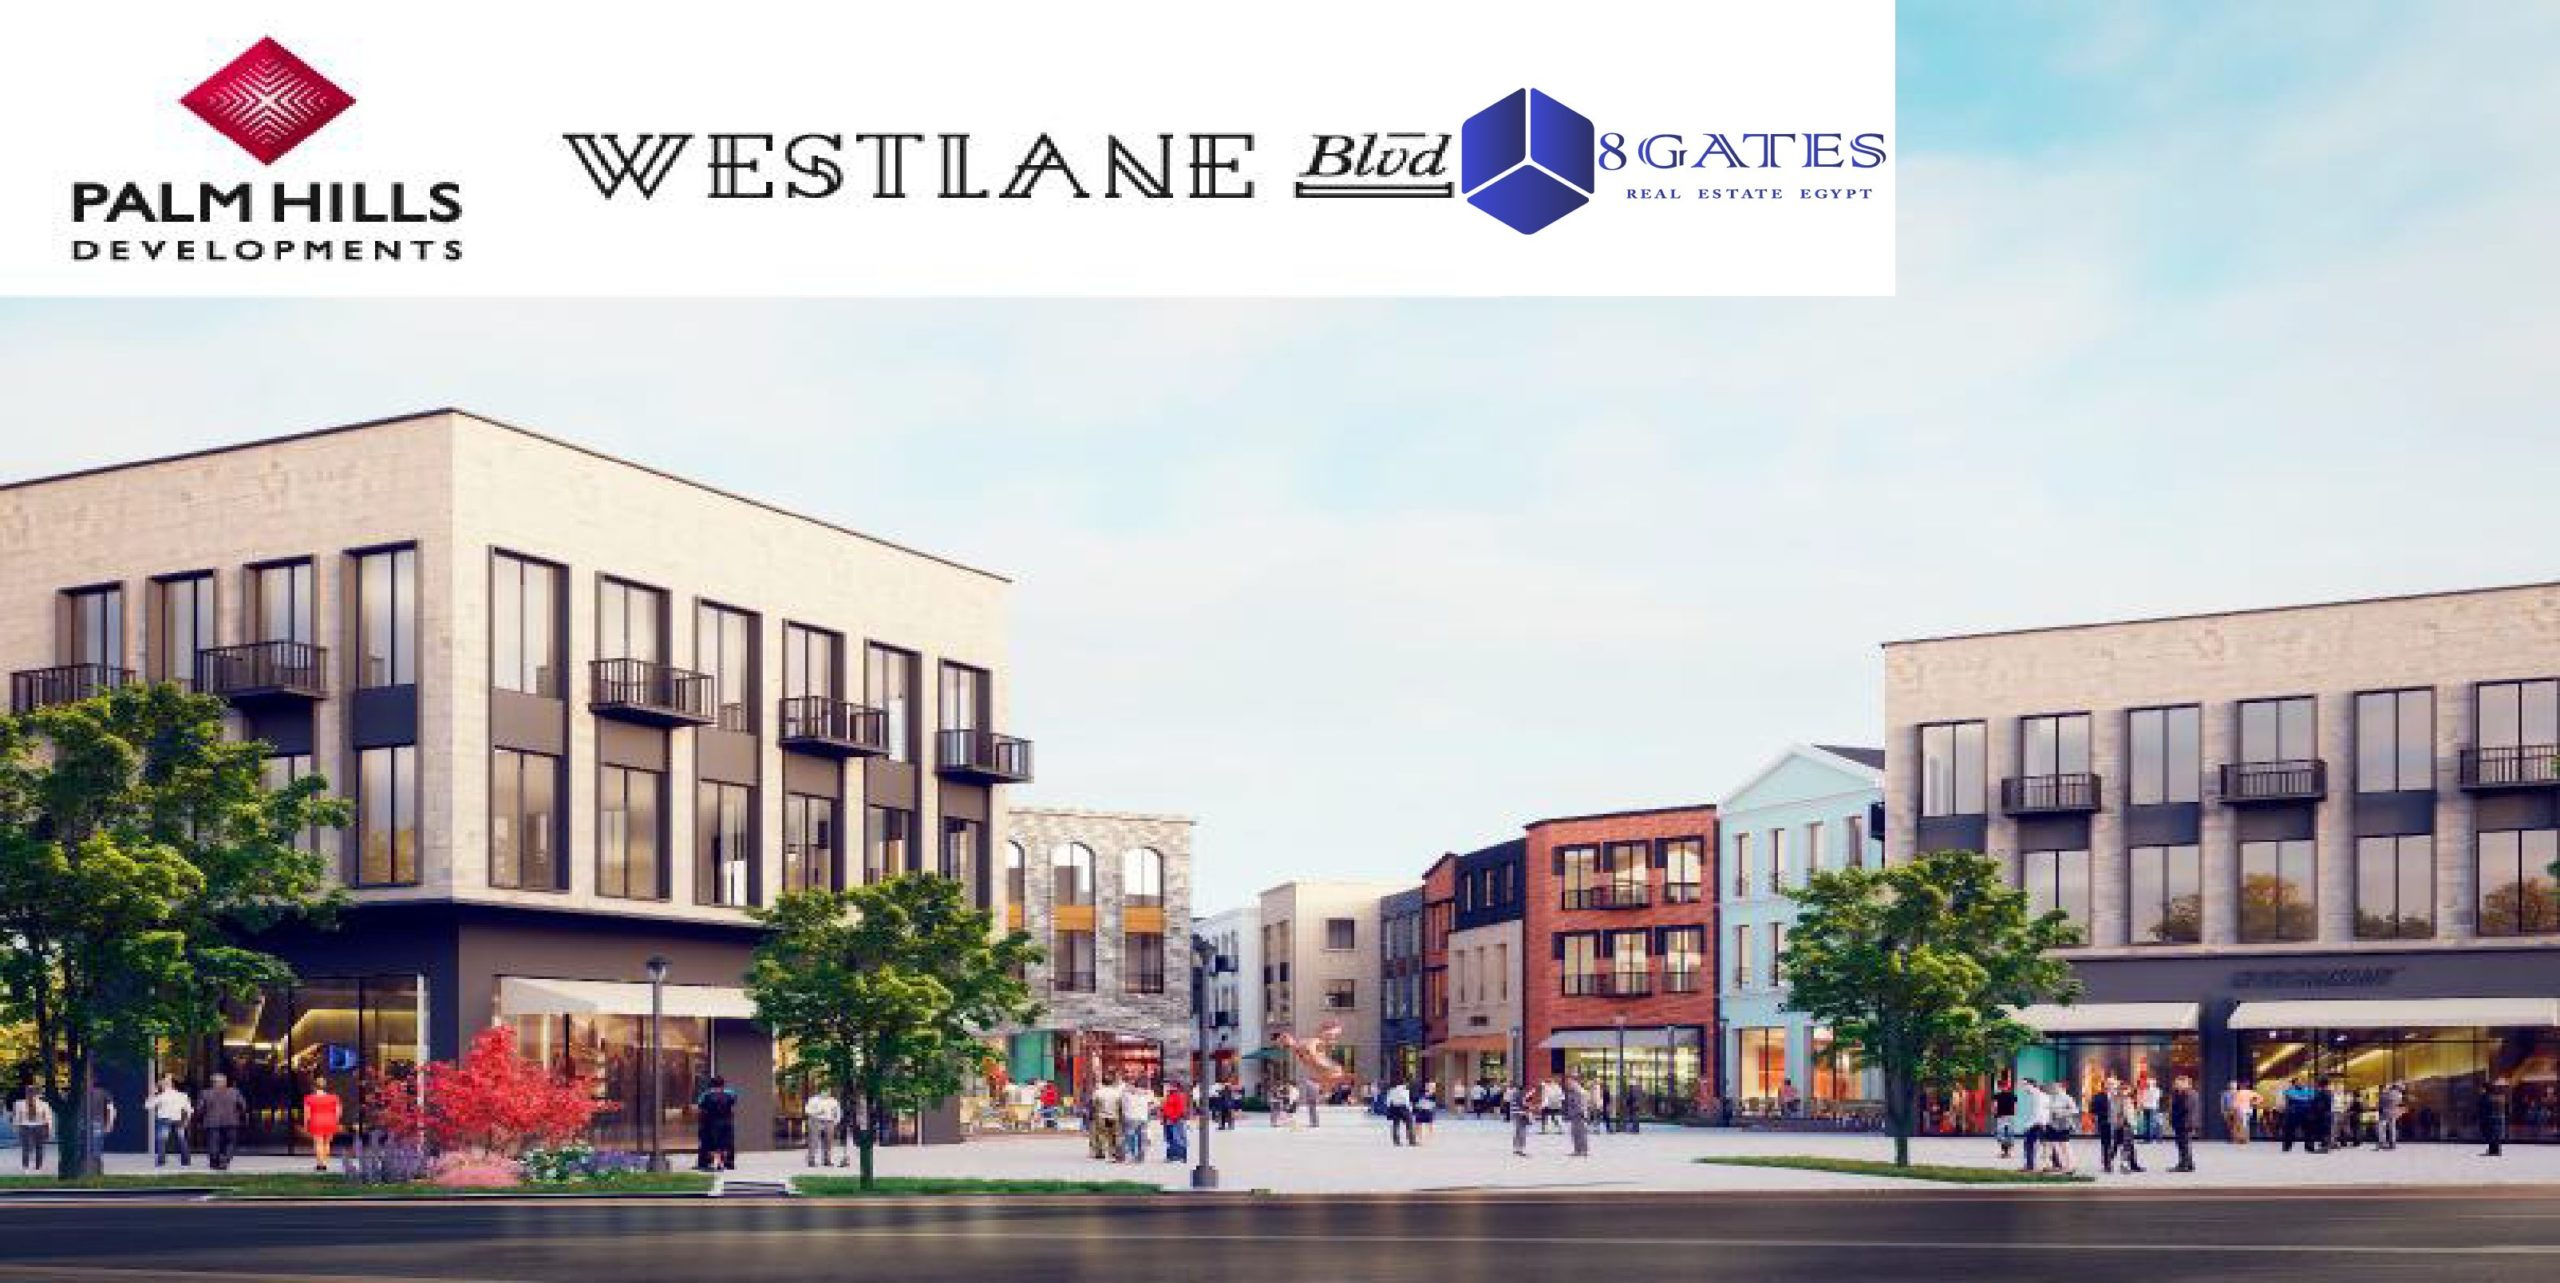 Westlane Boulevard palm hills Palm Parks Compound Residental and commercial Office building Unit For Sale Shop and Offices - 8 Gates Real Estate Egypt (3)